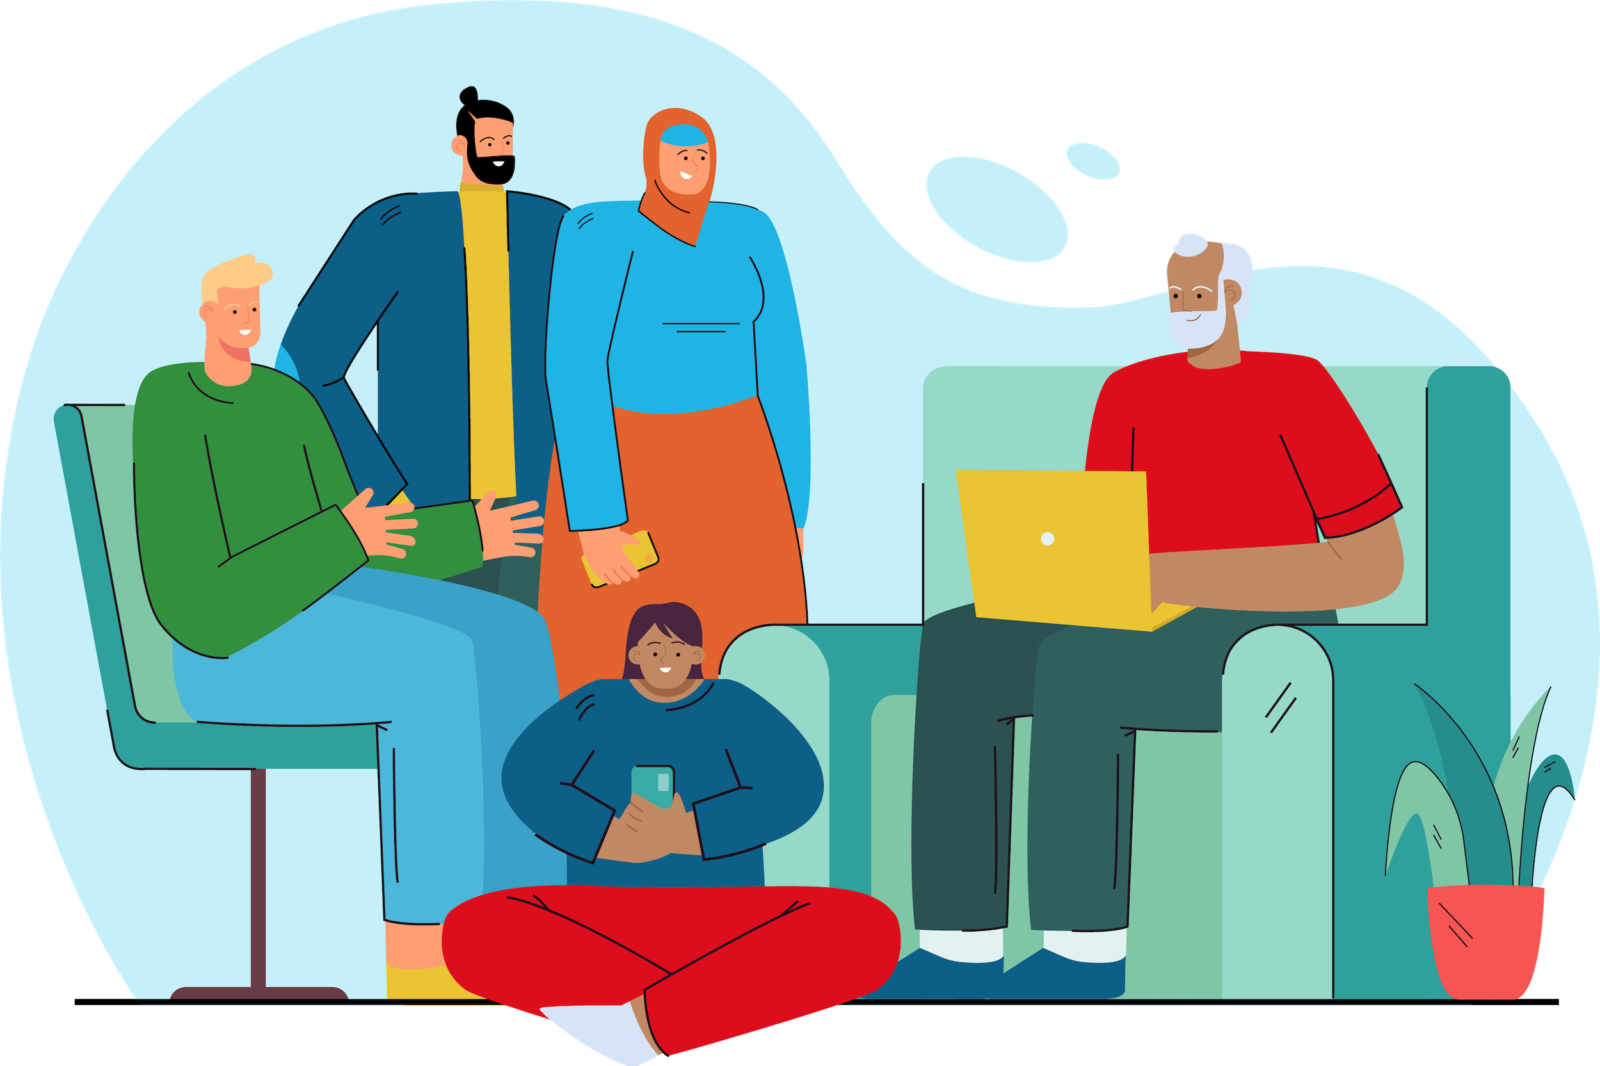 An illustration of a diverse group with devices